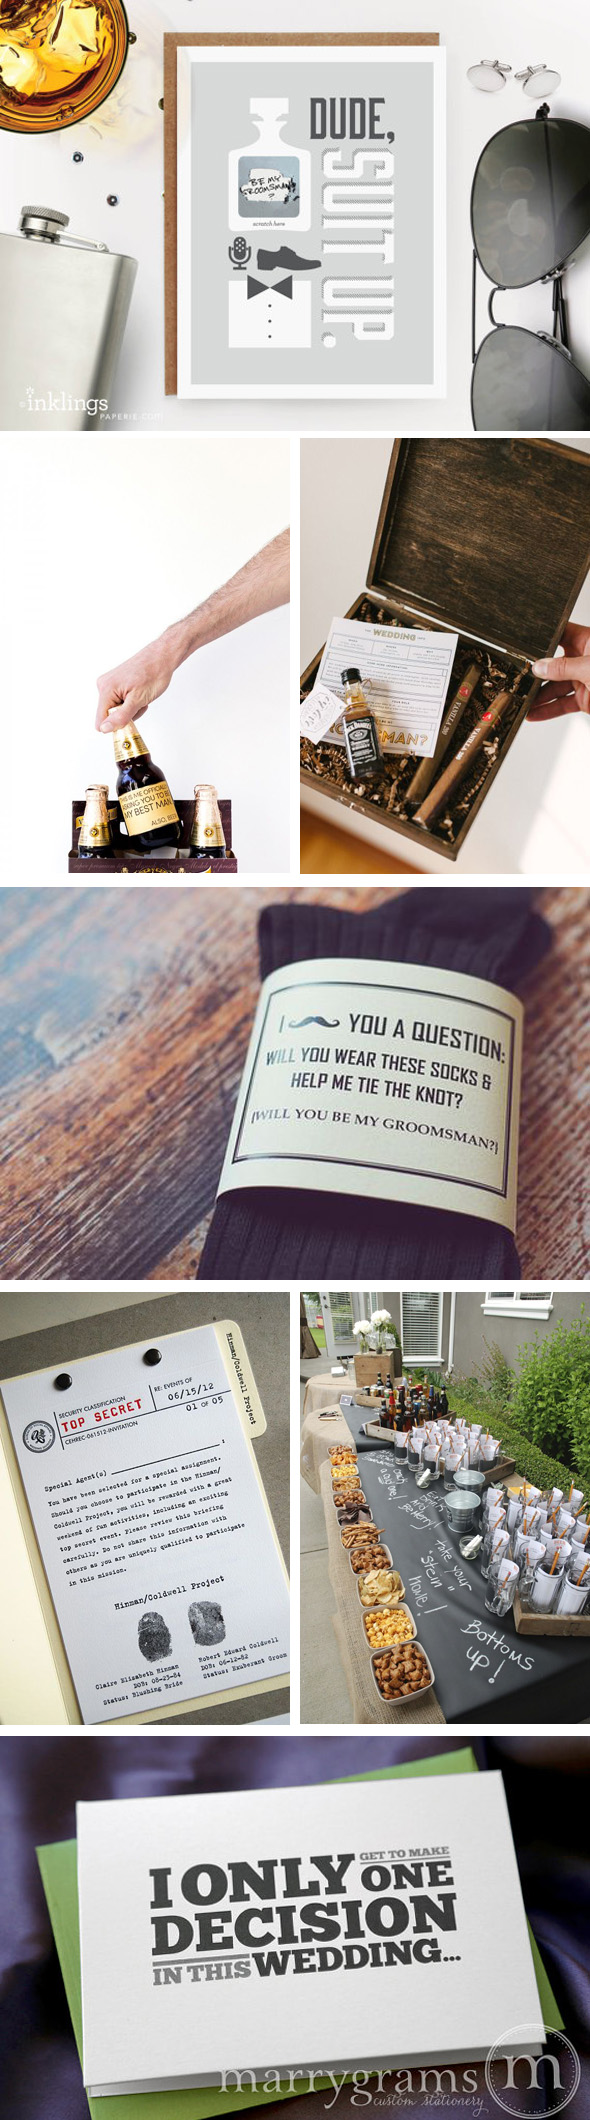 How to ask will you be my groomsman los angeles wedding how to ask groomsmen junglespirit Choice Image